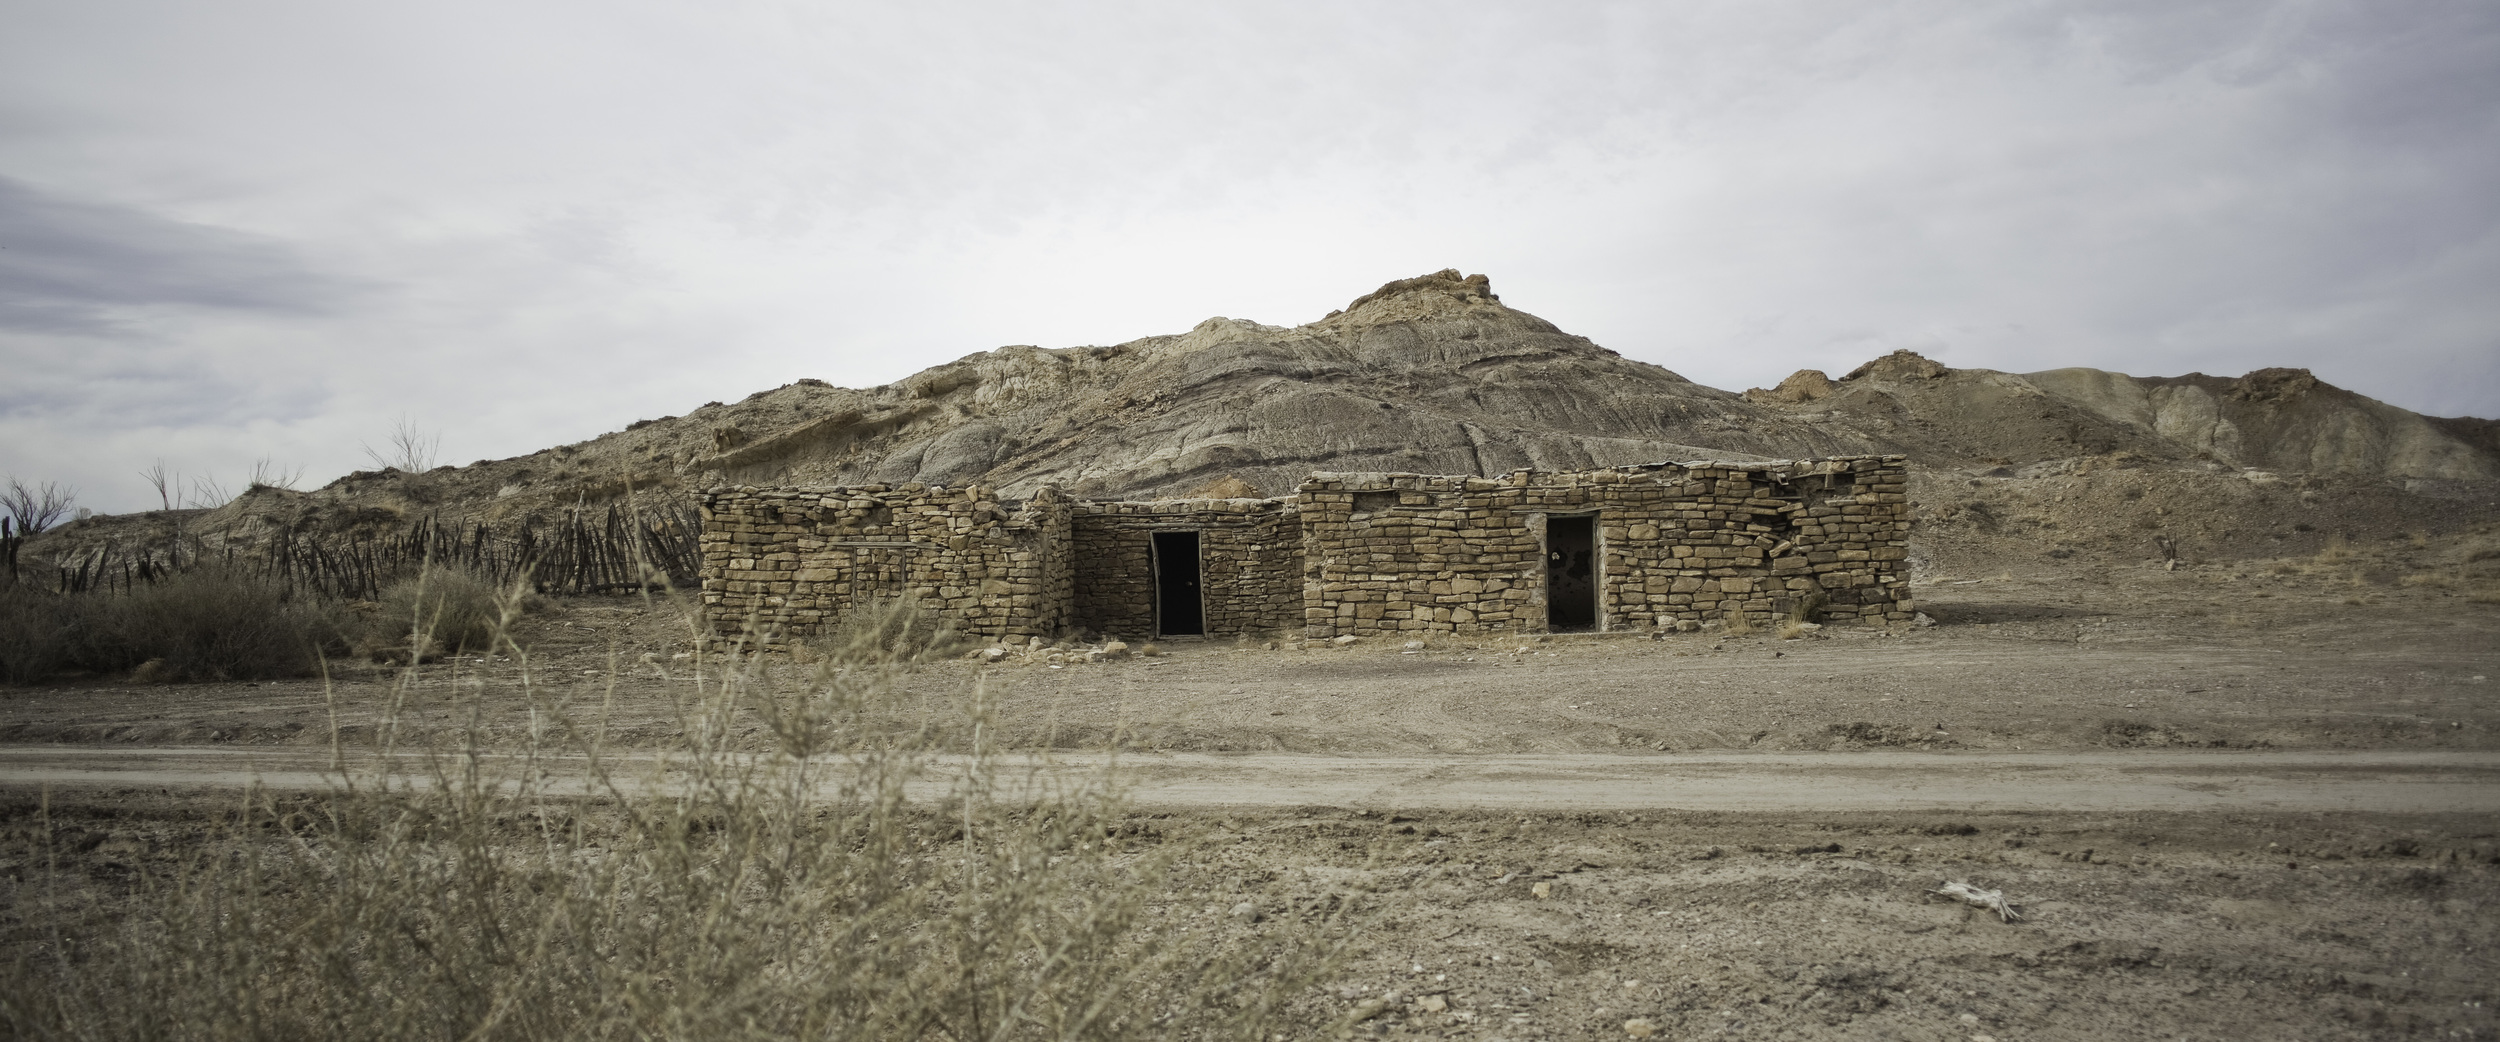 A wider view of the hut